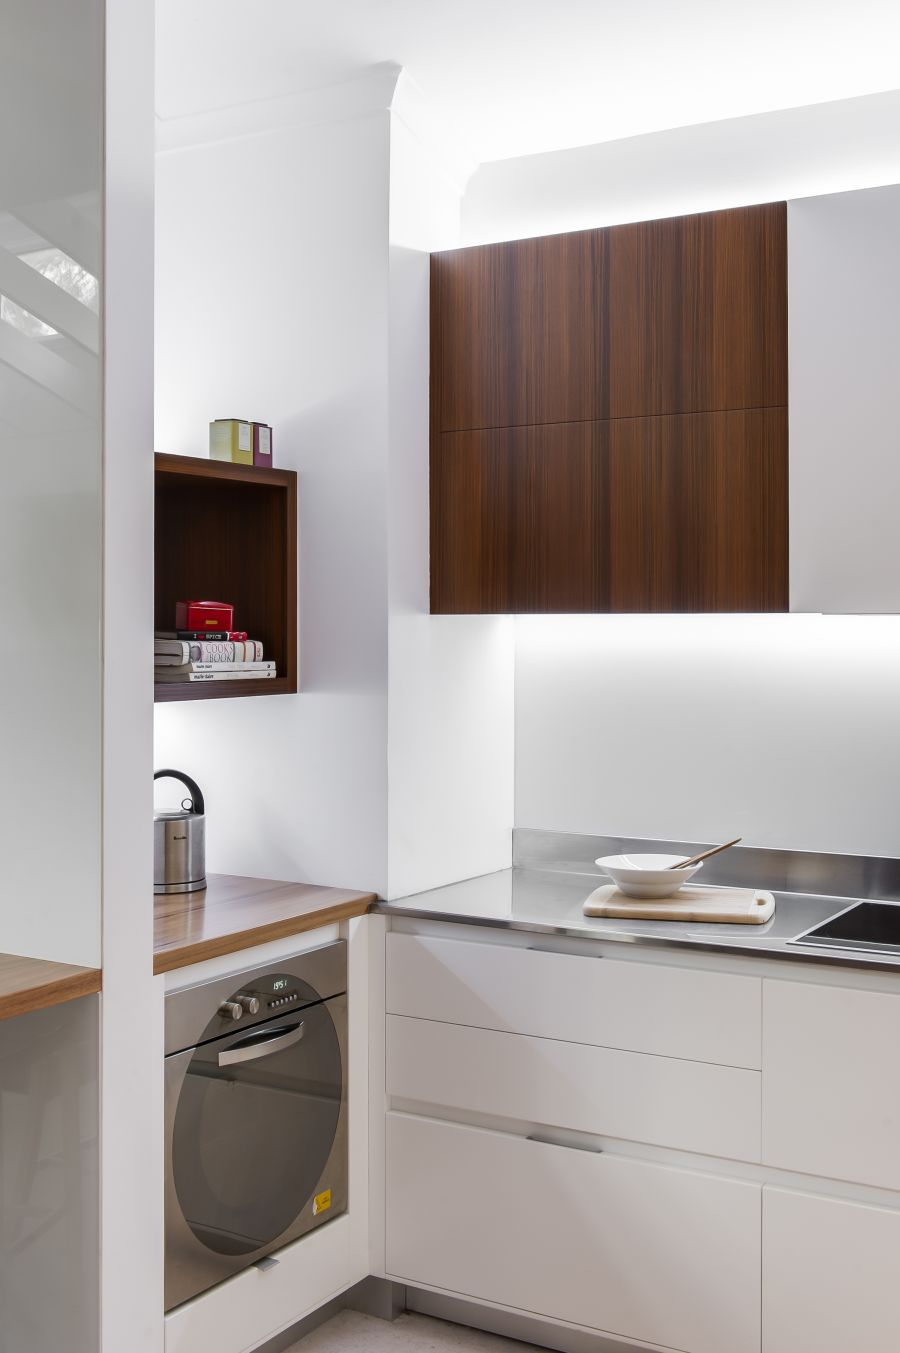 Small Contemporary Kitchen Makes Room For Home Office and Laundry